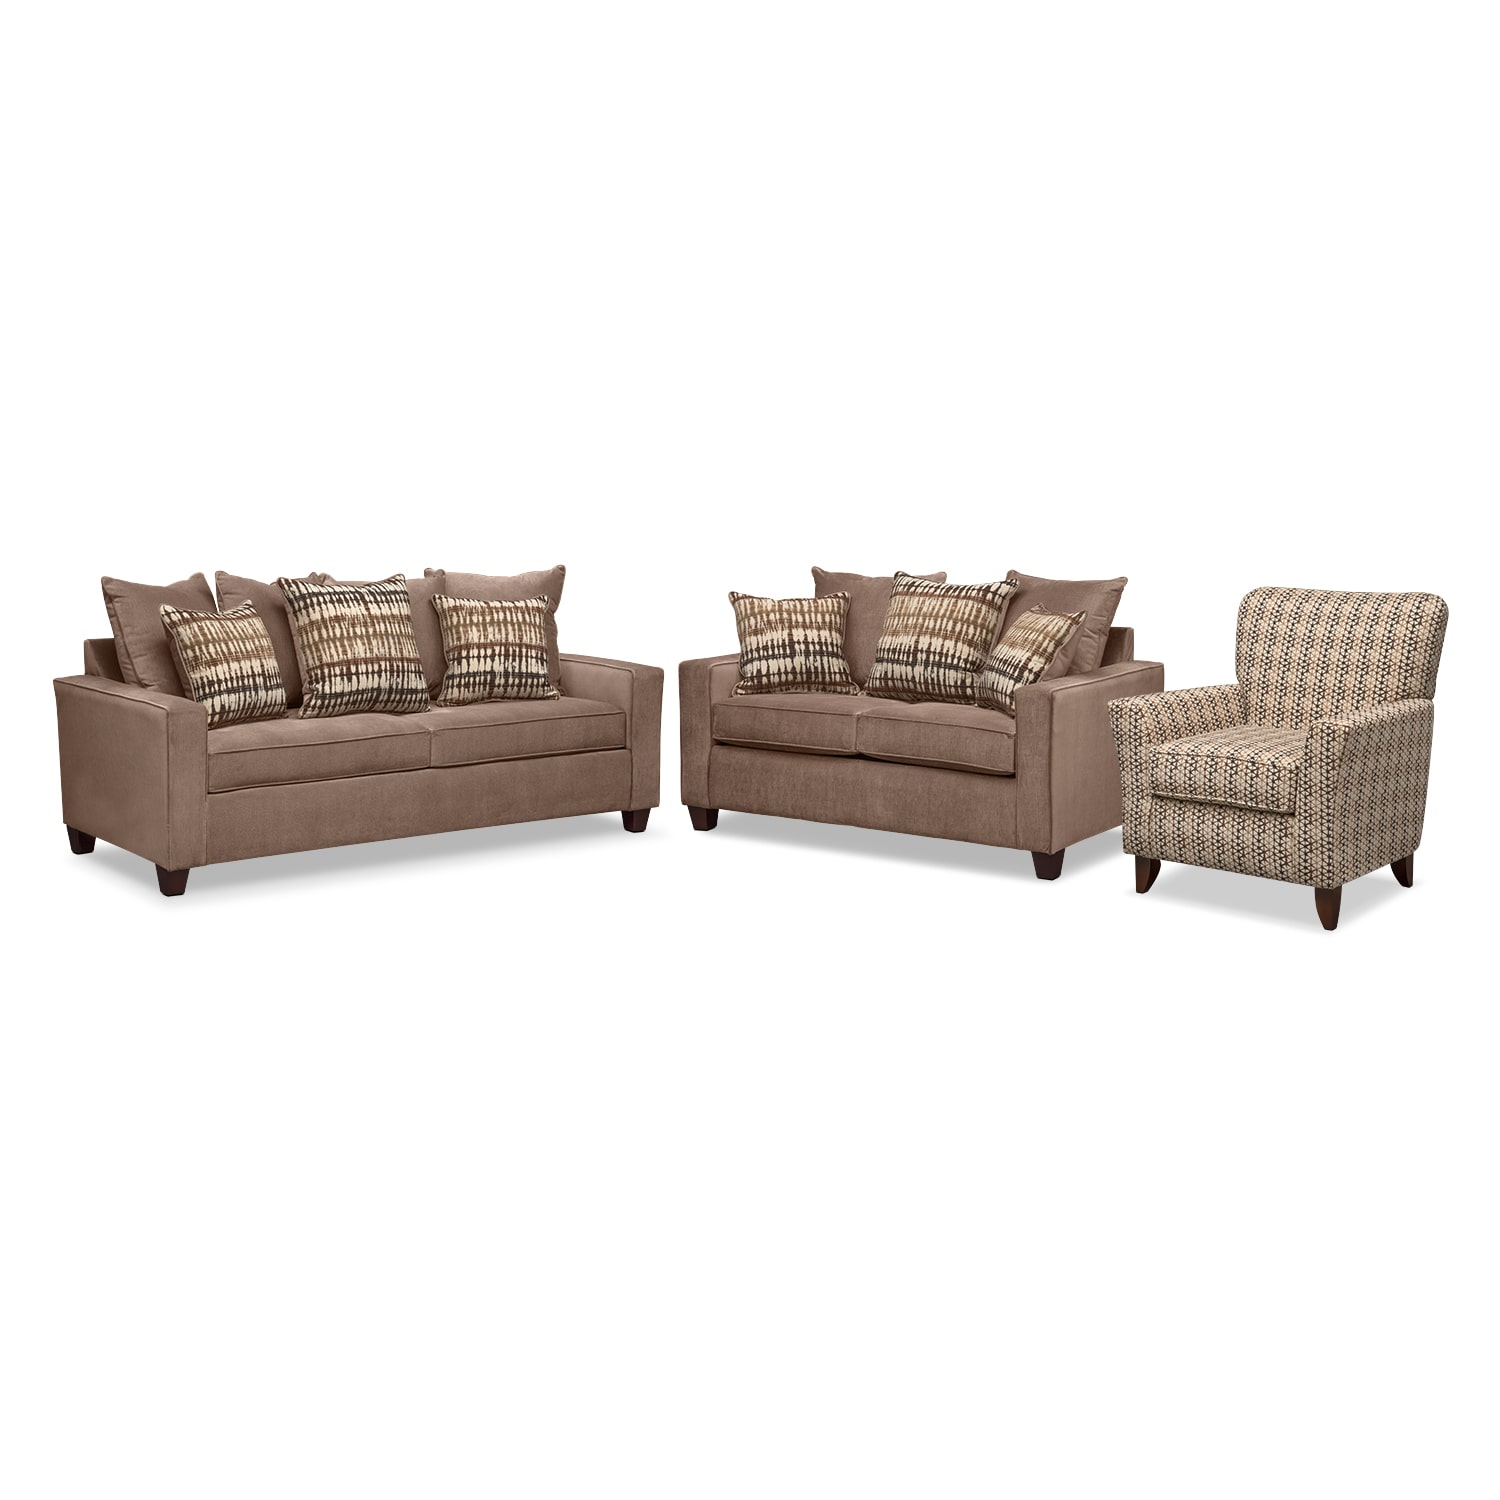 Bryden Queen Innerspring Sleeper Sofa, Loveseat and Accent Chair Set - Chocolate